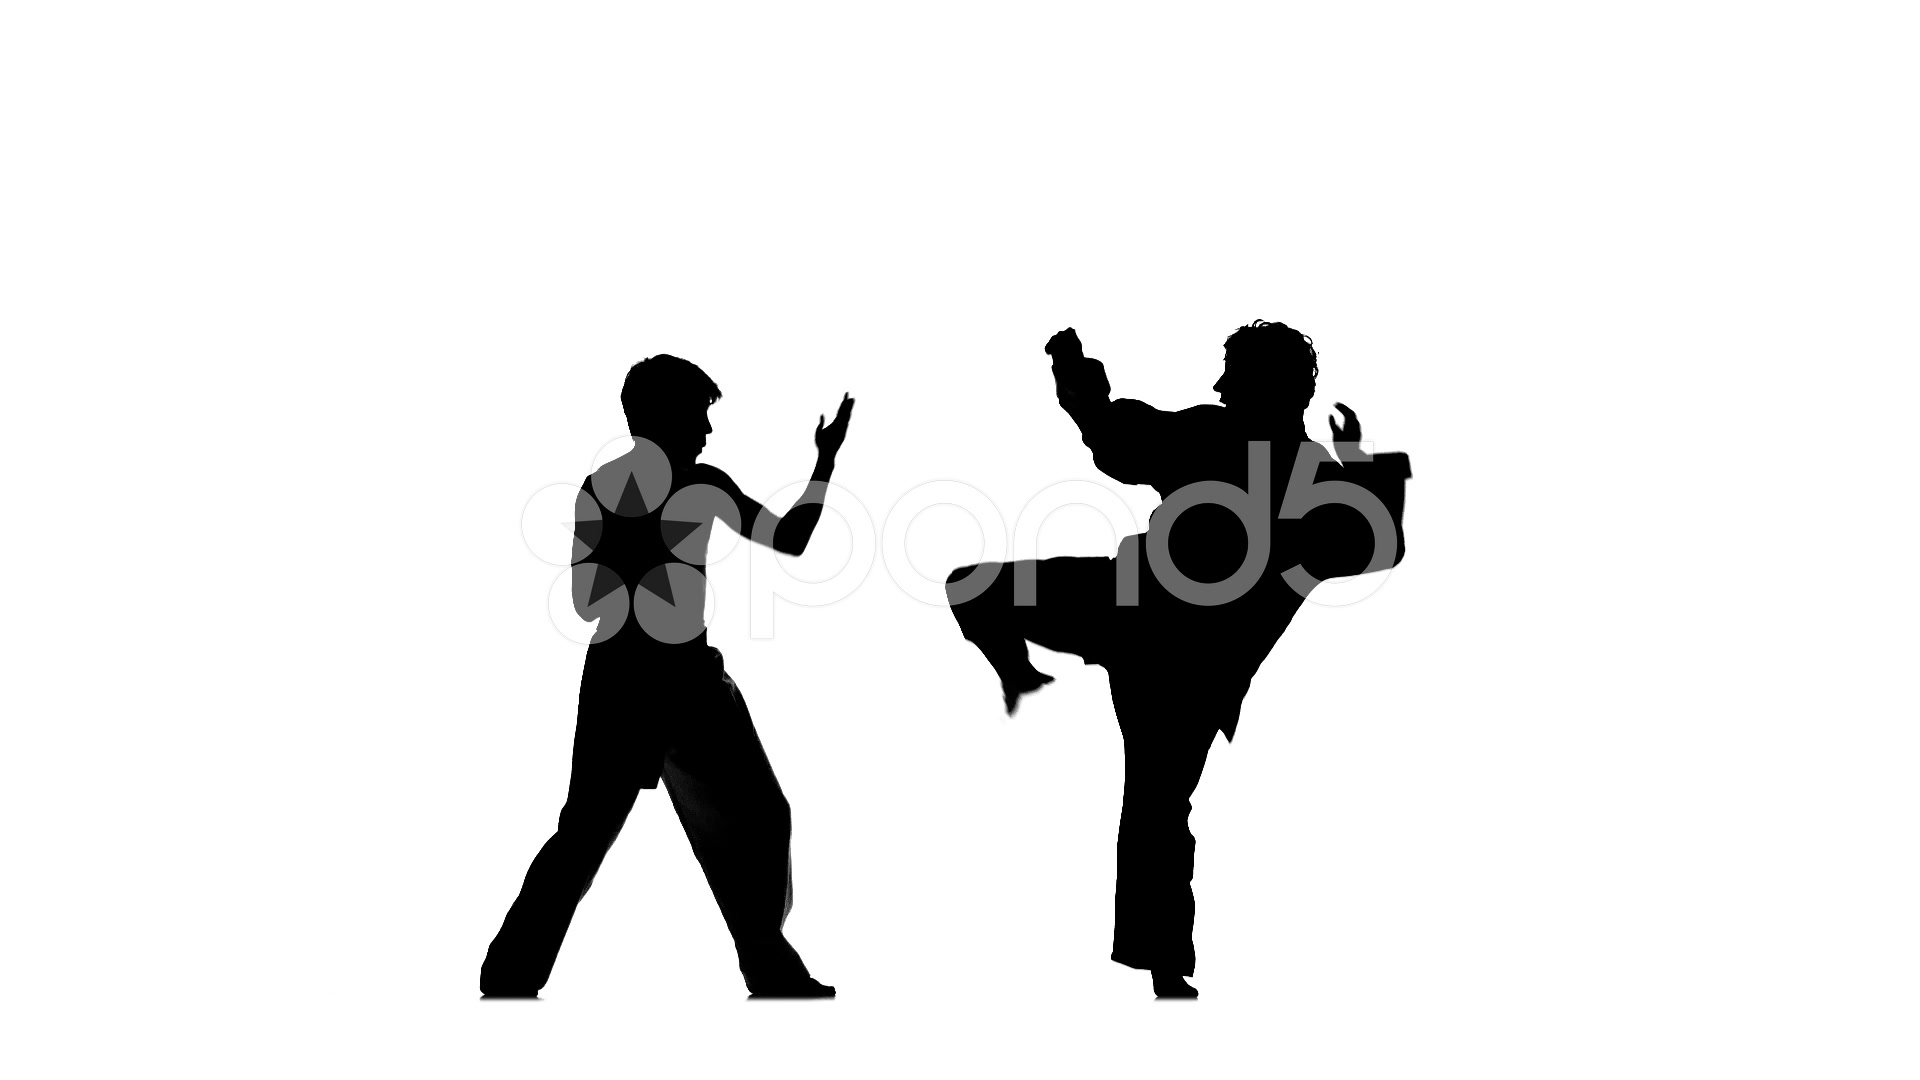 1920x1080 Sparrynh Taekwondo On A White Background, Blows From Each Other